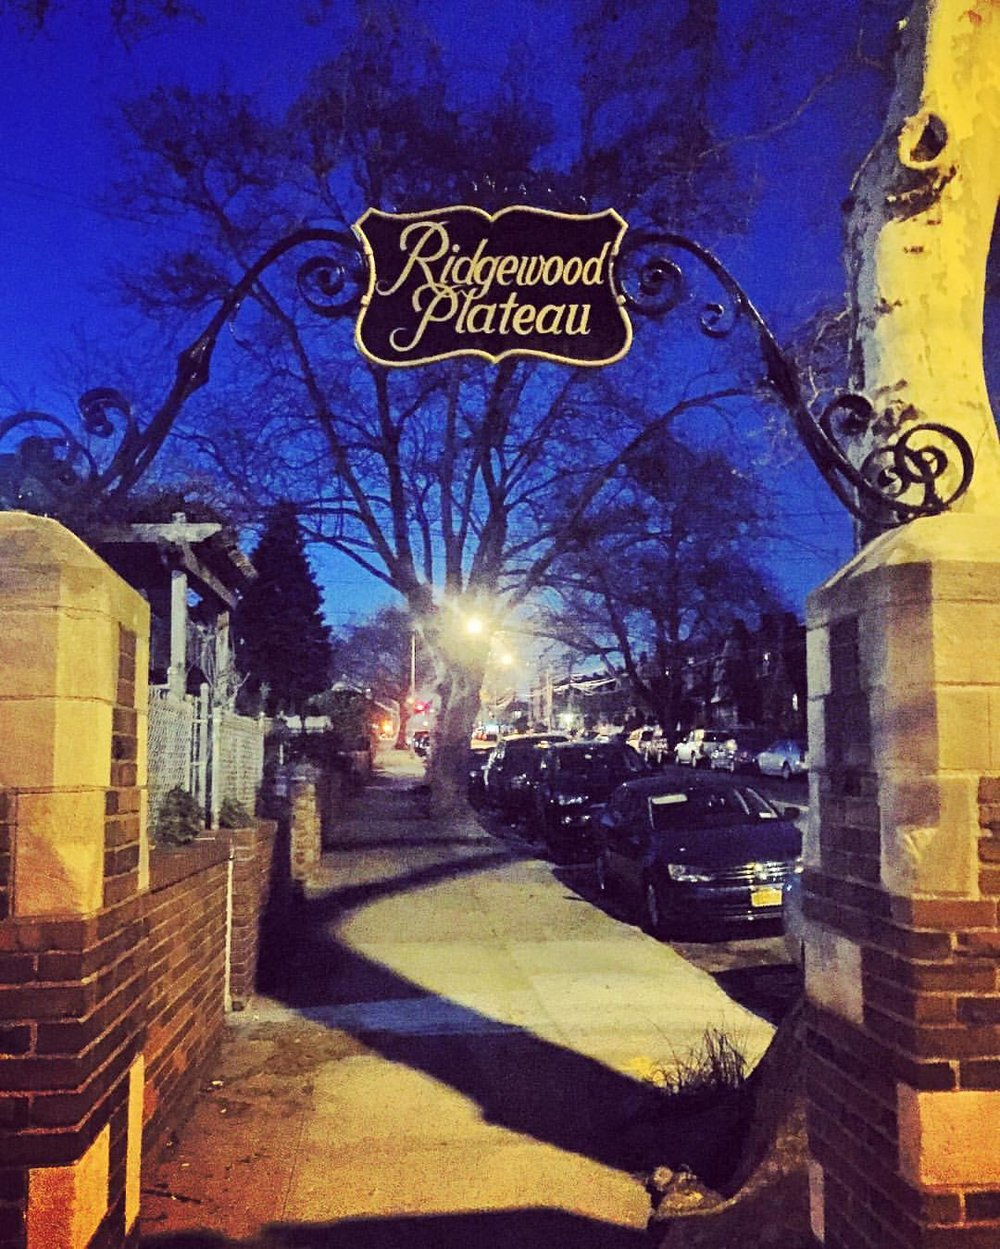 "Last night's walk to O'Neills in Maspeth (Shilelagh Law!) via the ""Ridgewood Plateau"".  These signs marking the plateau at 65th Place were restored in 2014. According to the Juniper Berry, they were originally there to entice people to move to the neighborhood in the 20s & 30s because apparently Ridgewood was a cooler neighborhood.              #maspethisamerica #maspethqueens #maspethny #queenscapes #queensnyc #queens #heartofqueens  (at O'Neills Maspeth)"